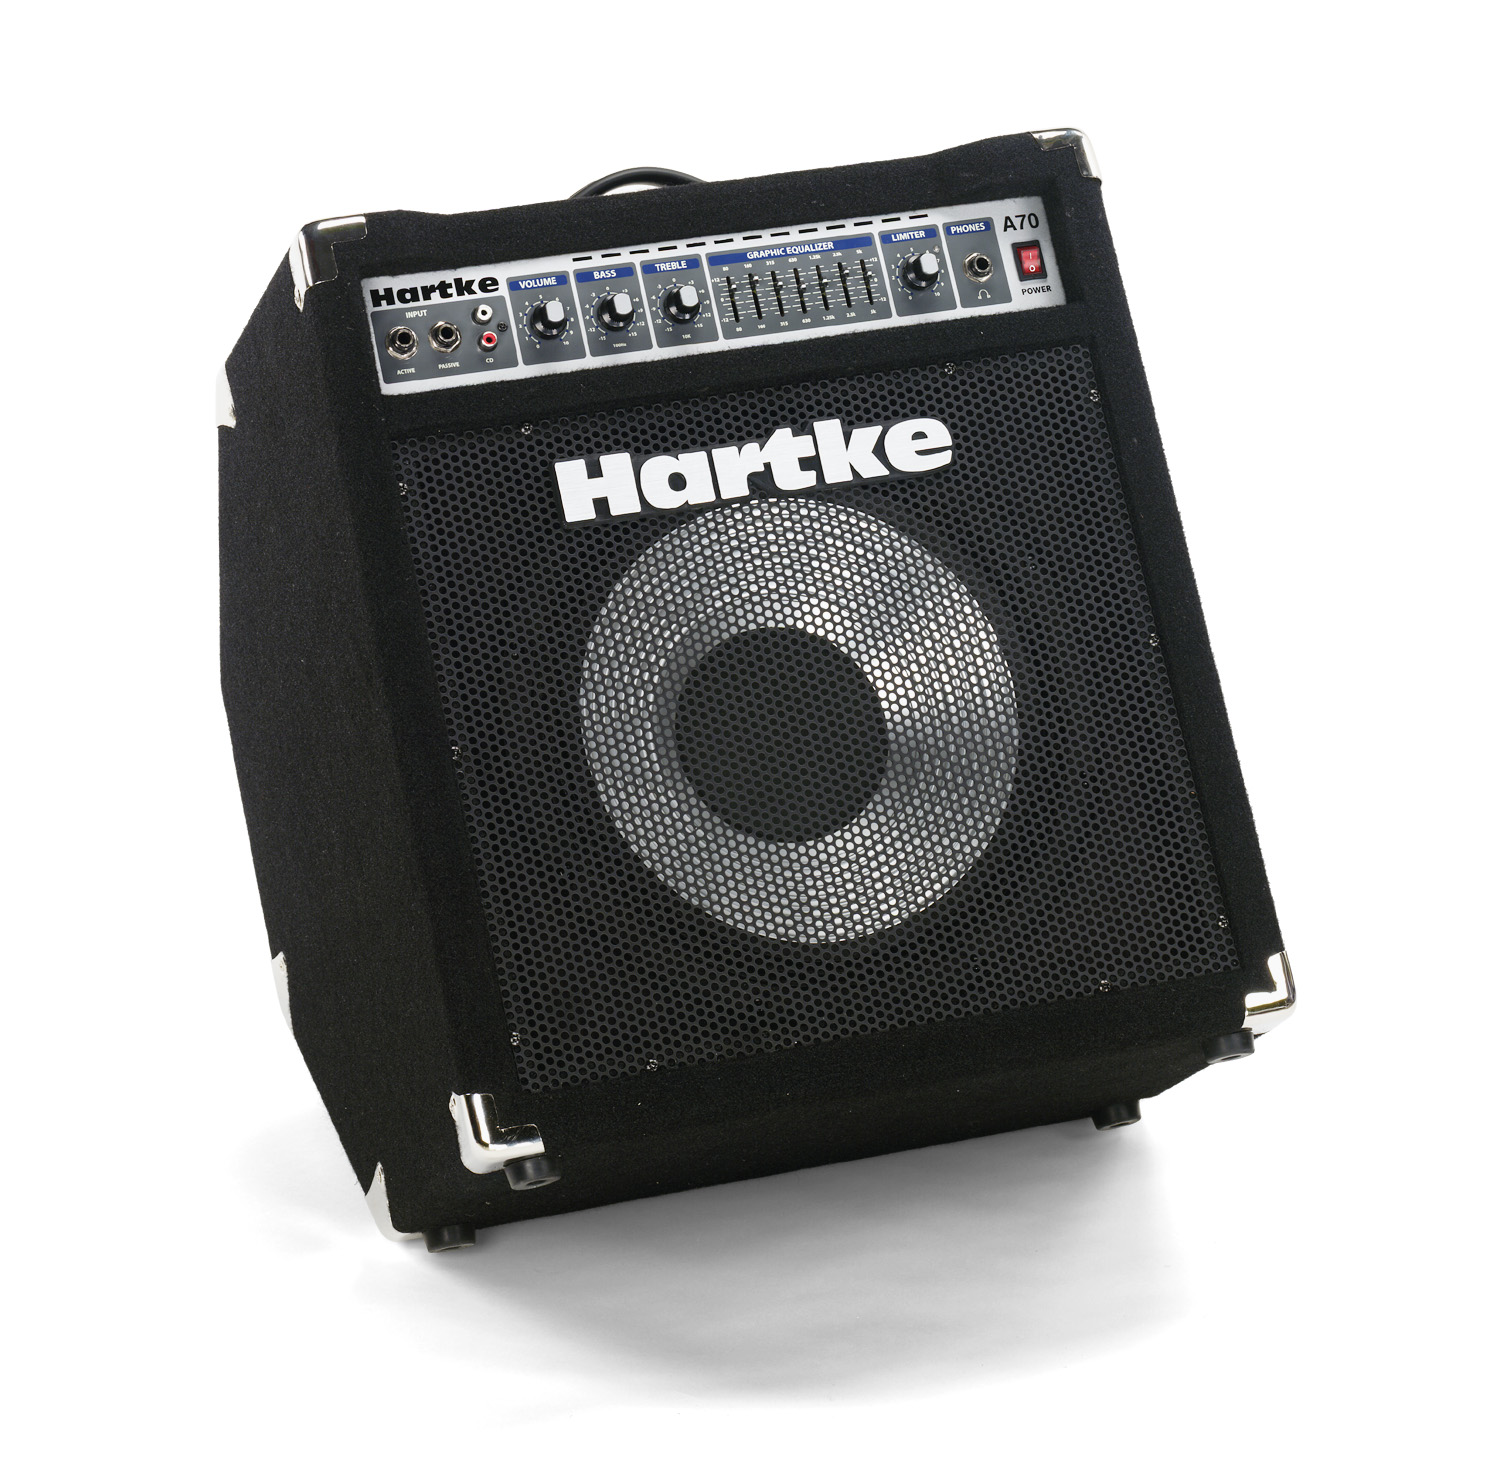 Hartke A70 Guitar Or Music Amplifier Home Stereo Powered Subwoofer